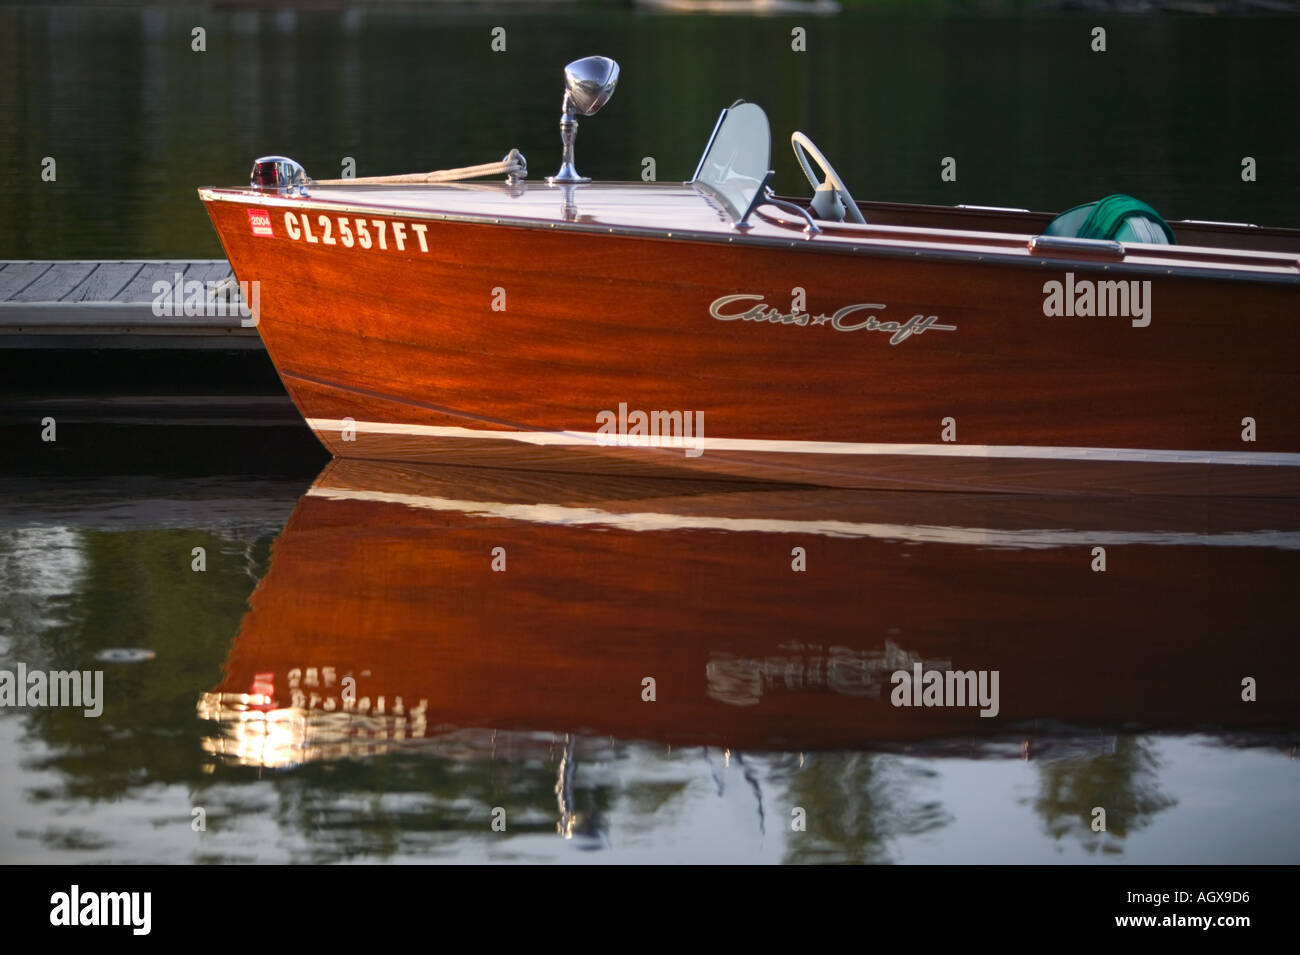 Chris Craft in late afternoon sun Sandpoint Wooden Boat Festival Bonner County Lake Pend Oreille Idaho USA - Stock Image